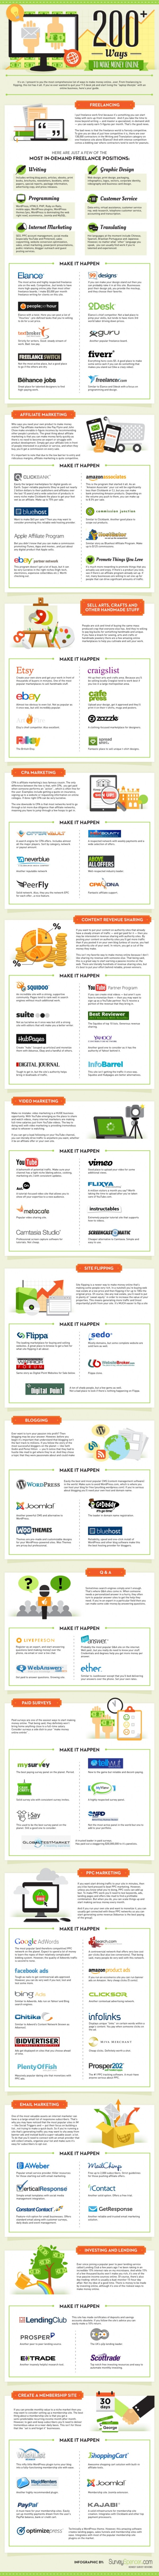 200+ Online Money-Making Ideas [Infographic]